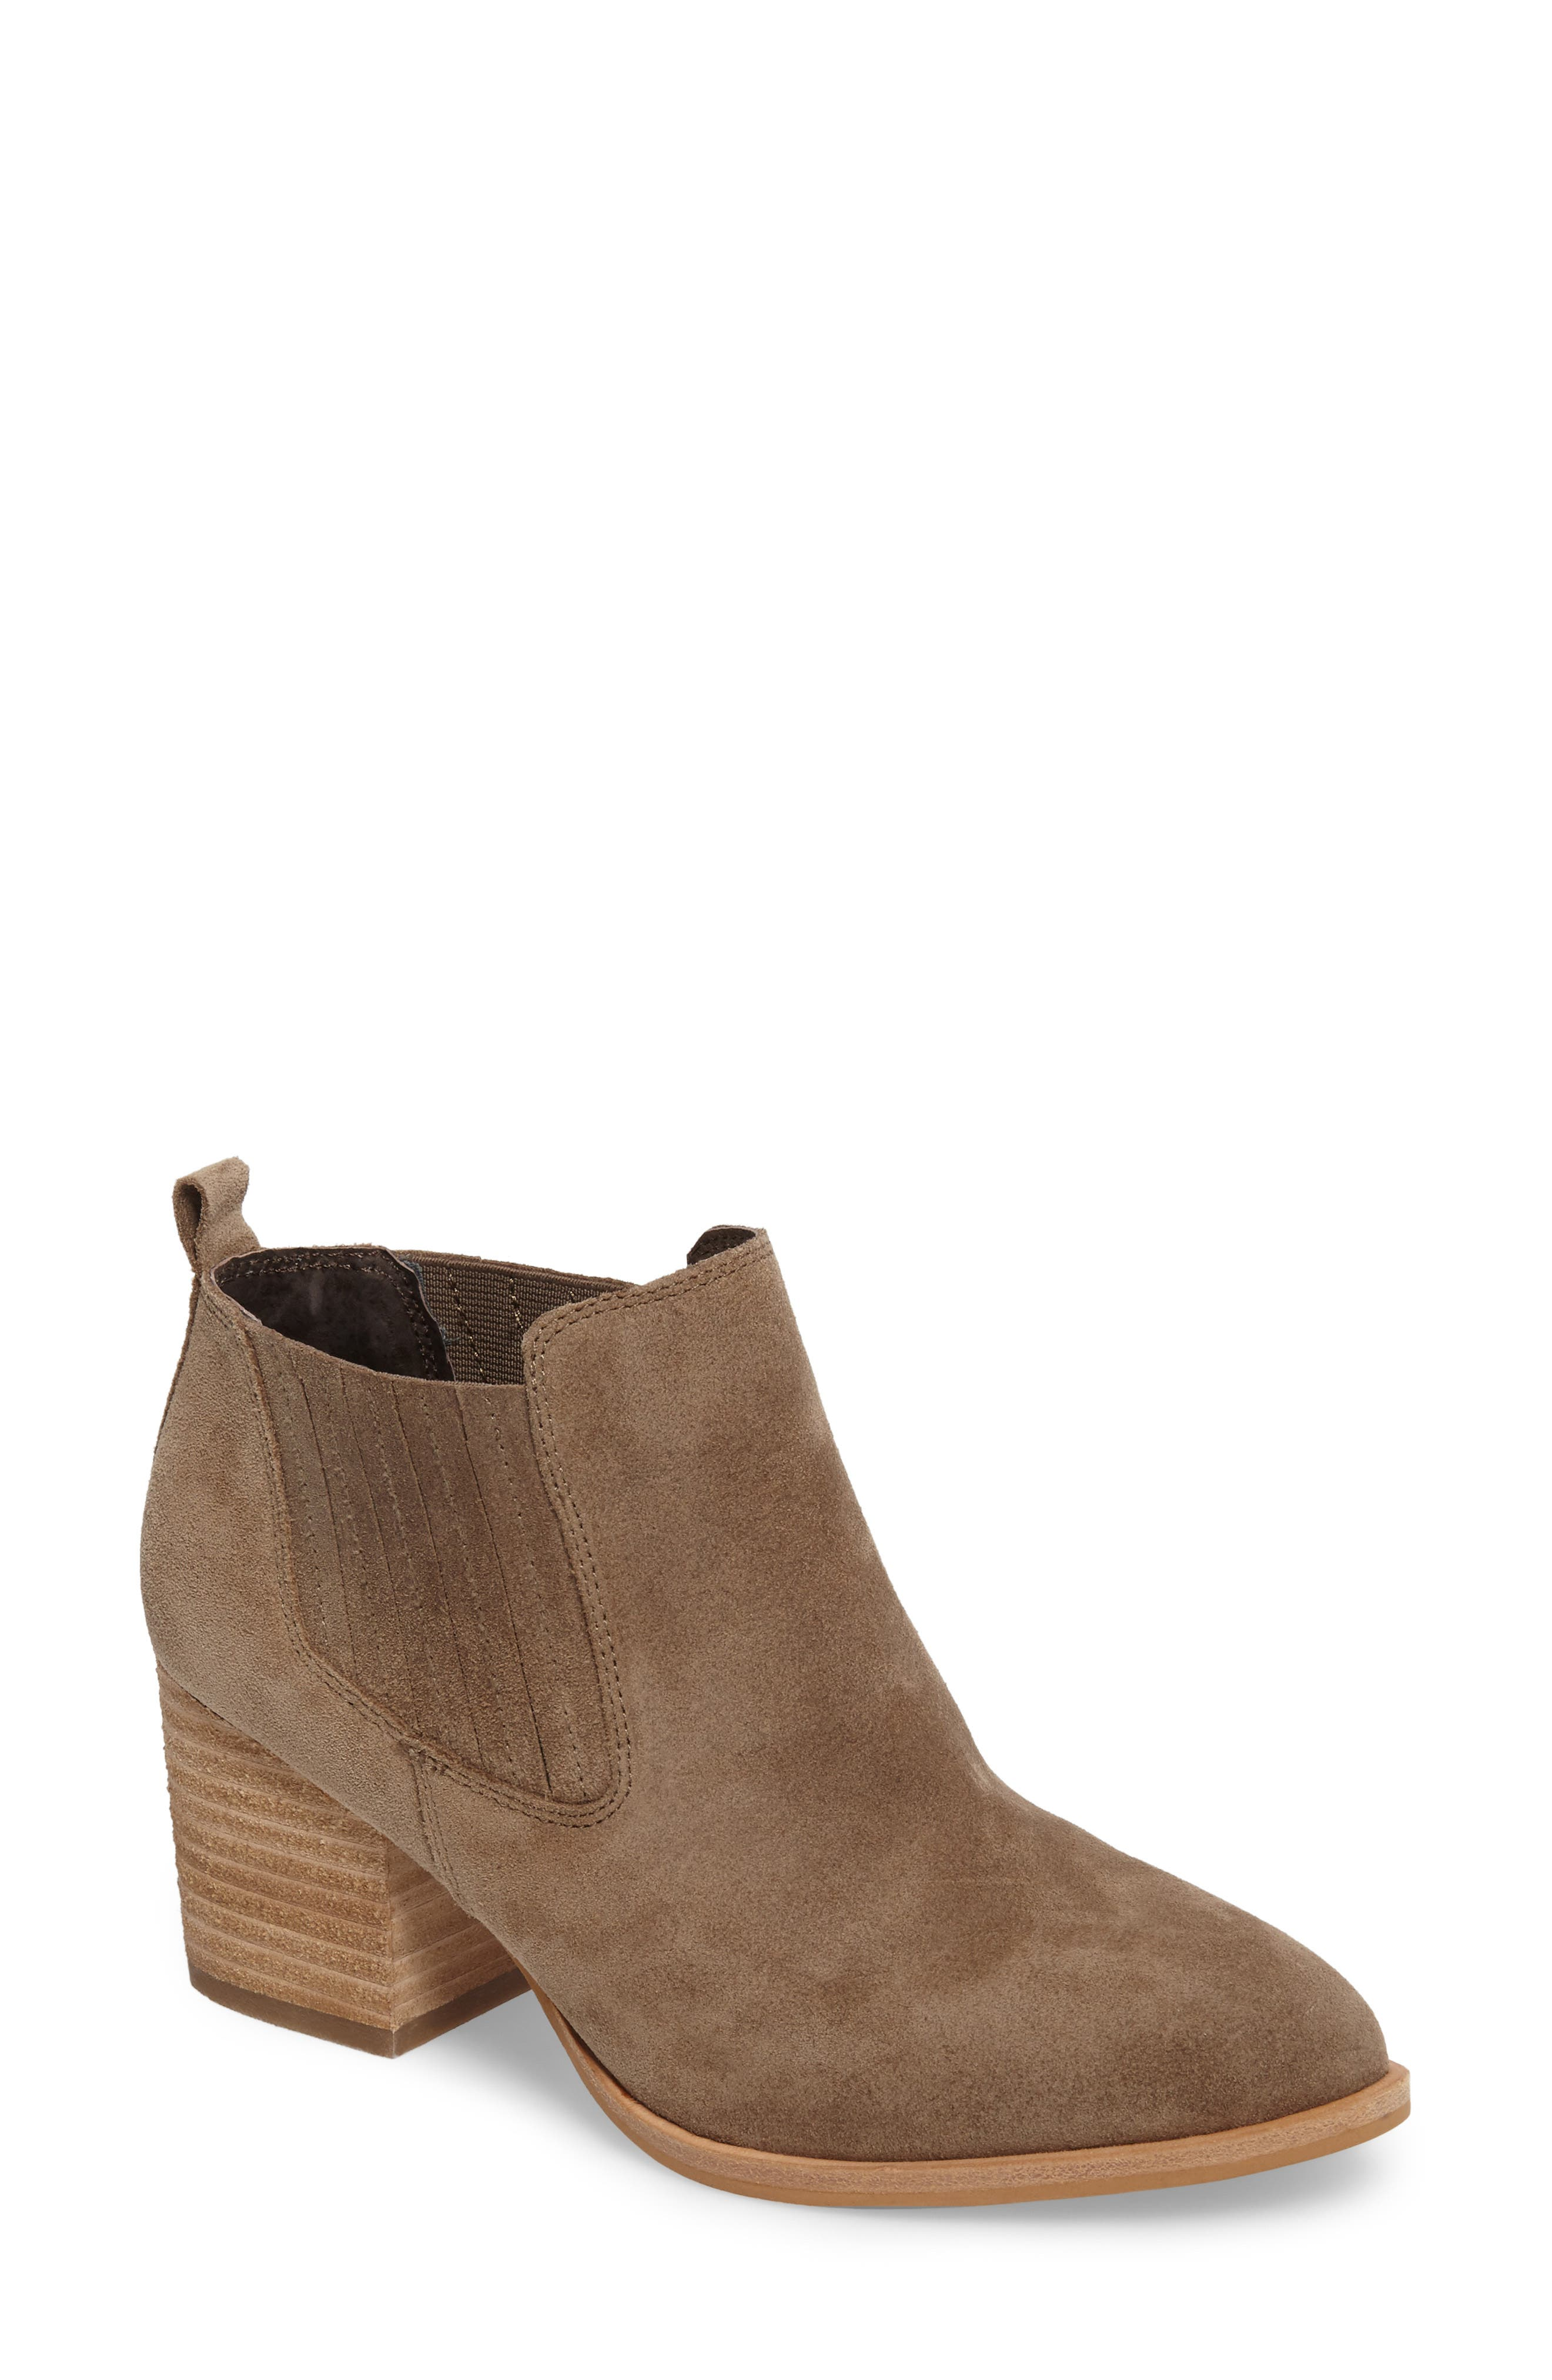 Isola Olicia Gored Bootie, Grey